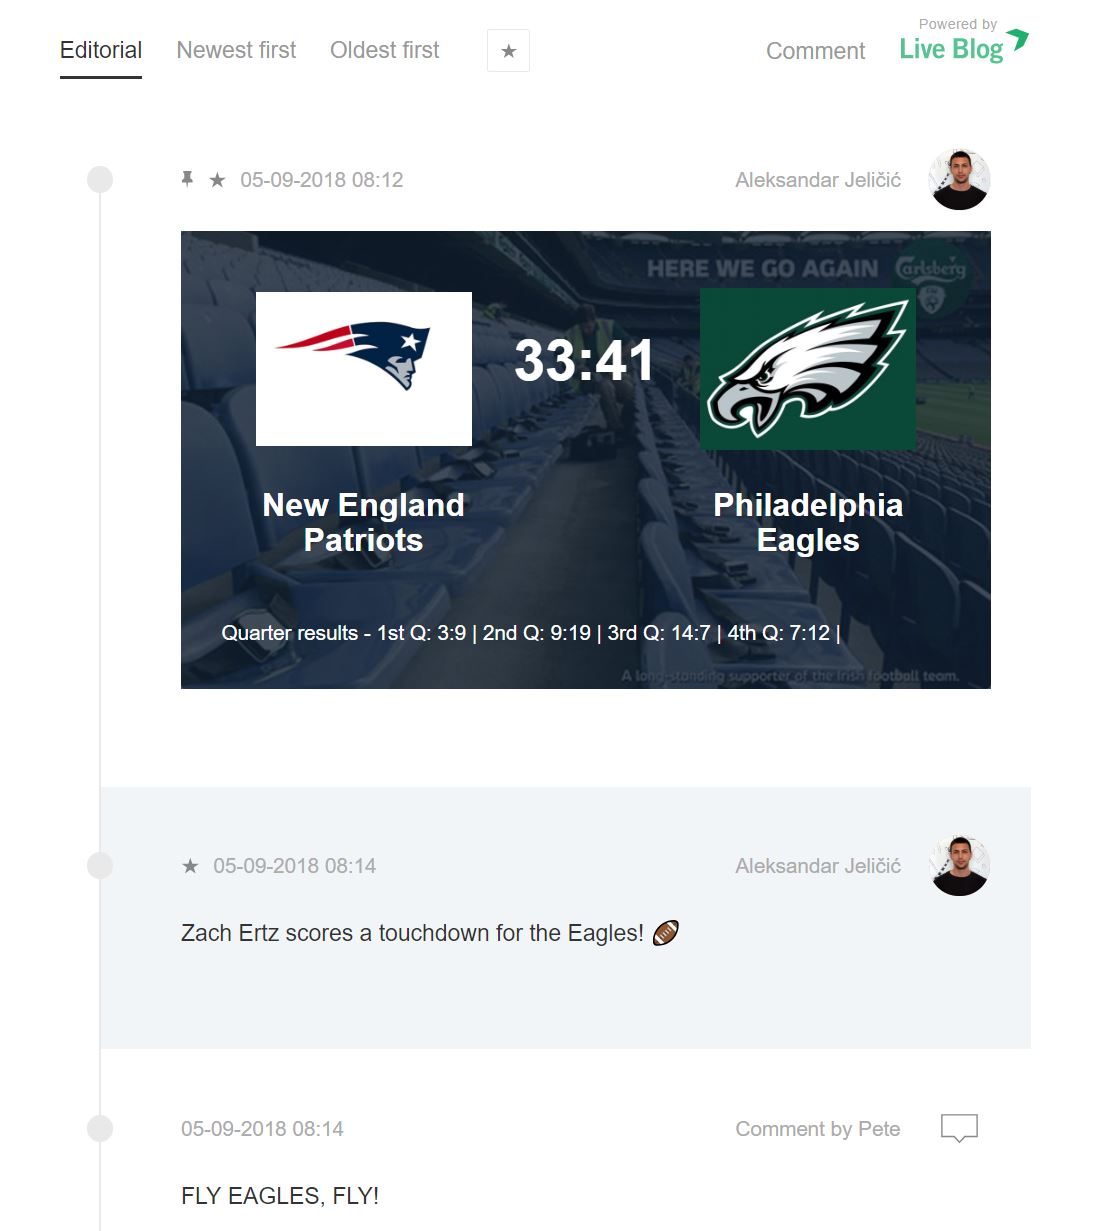 Live blogging American football